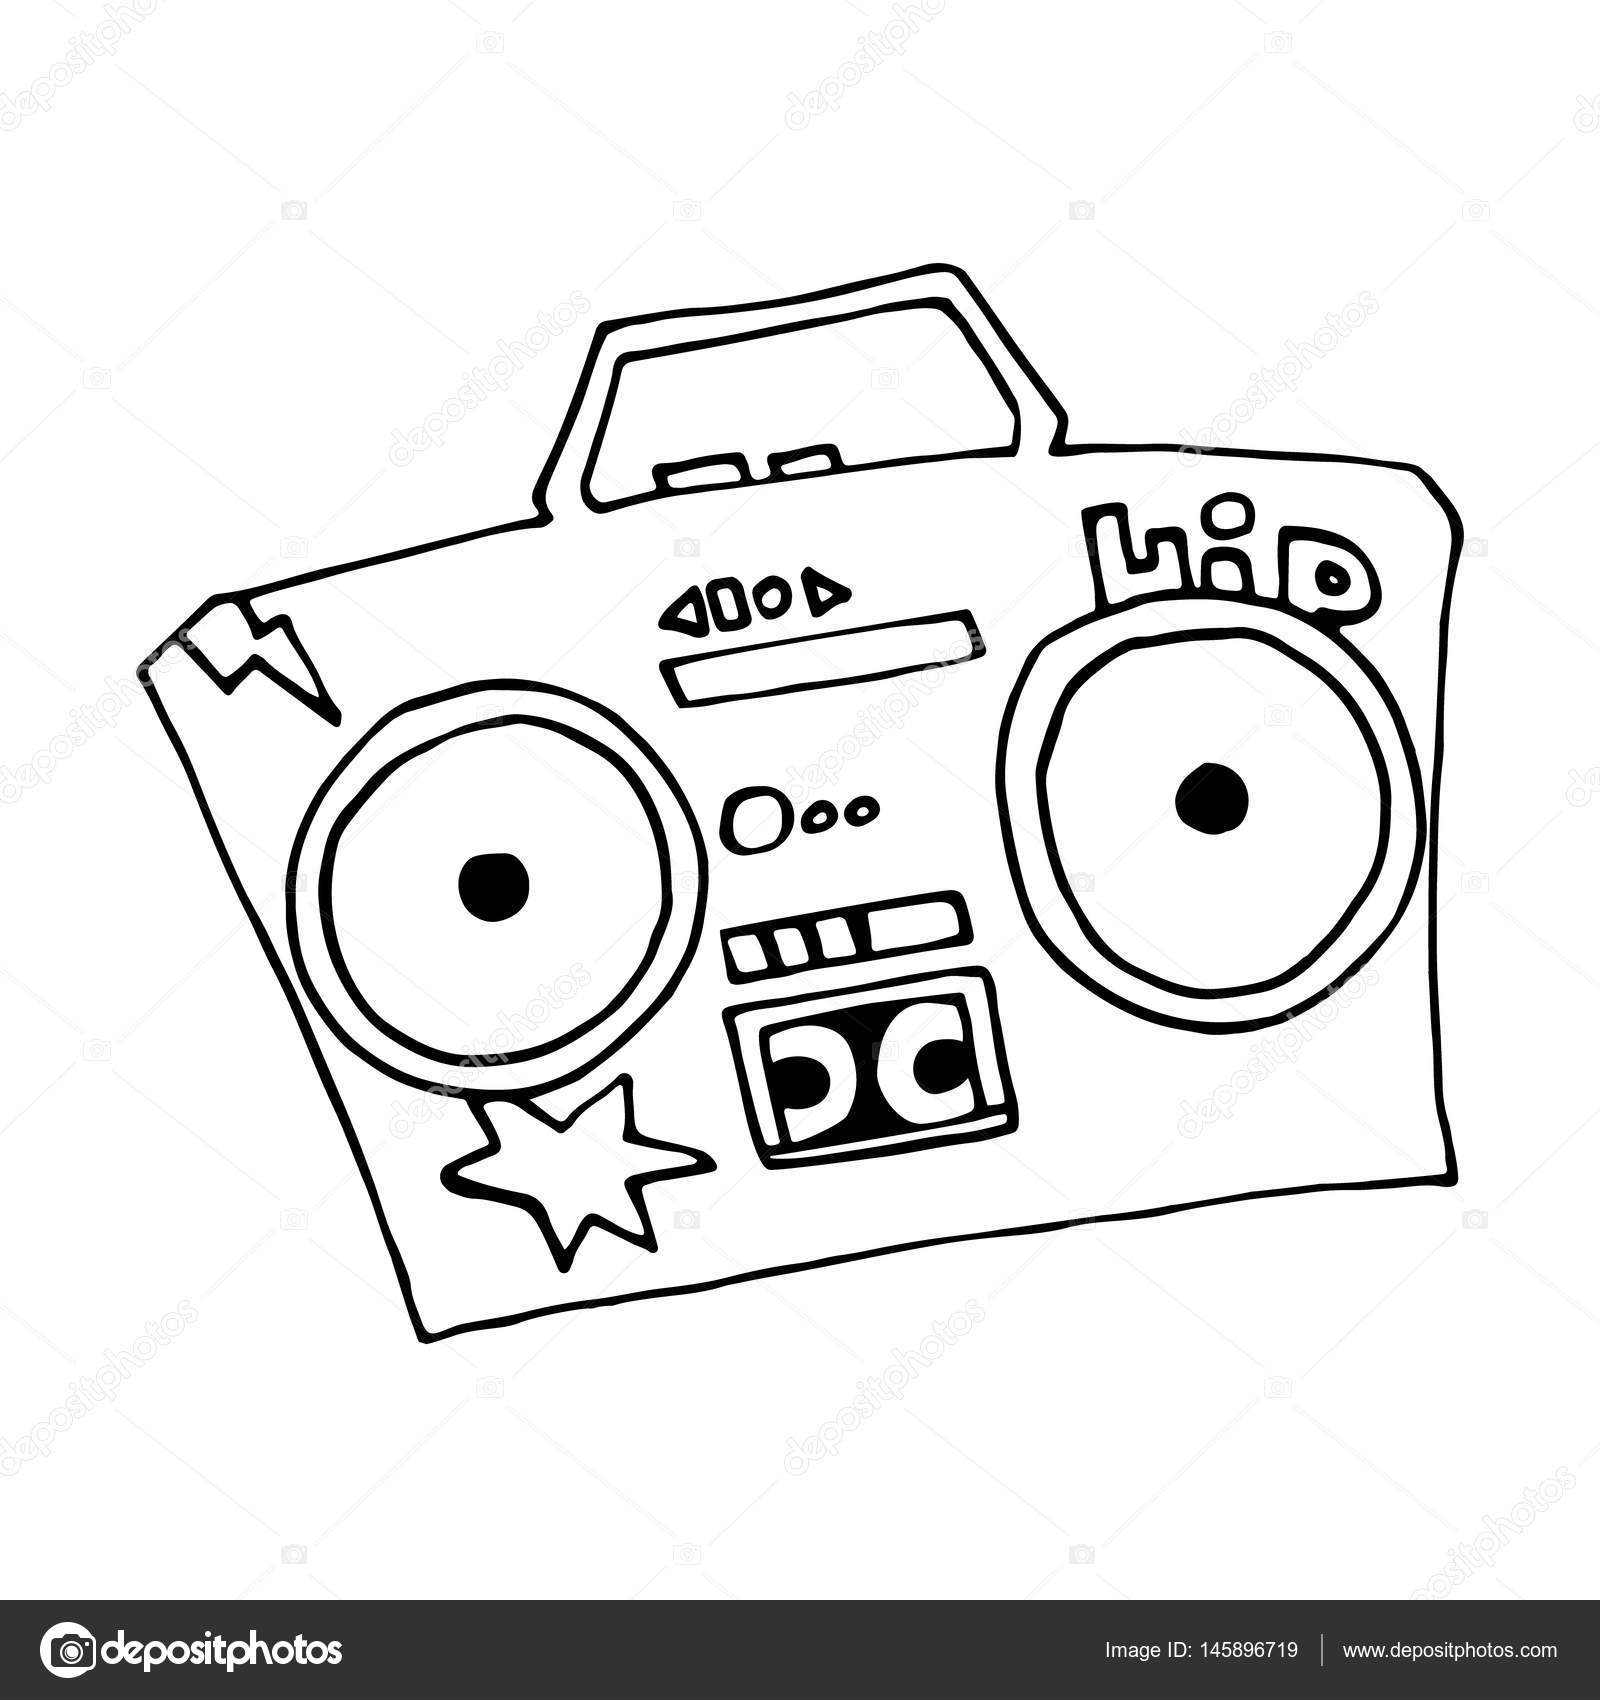 1600x1700 Ghetto Blaster Boombox Sketch Drawing On White Background. Vector